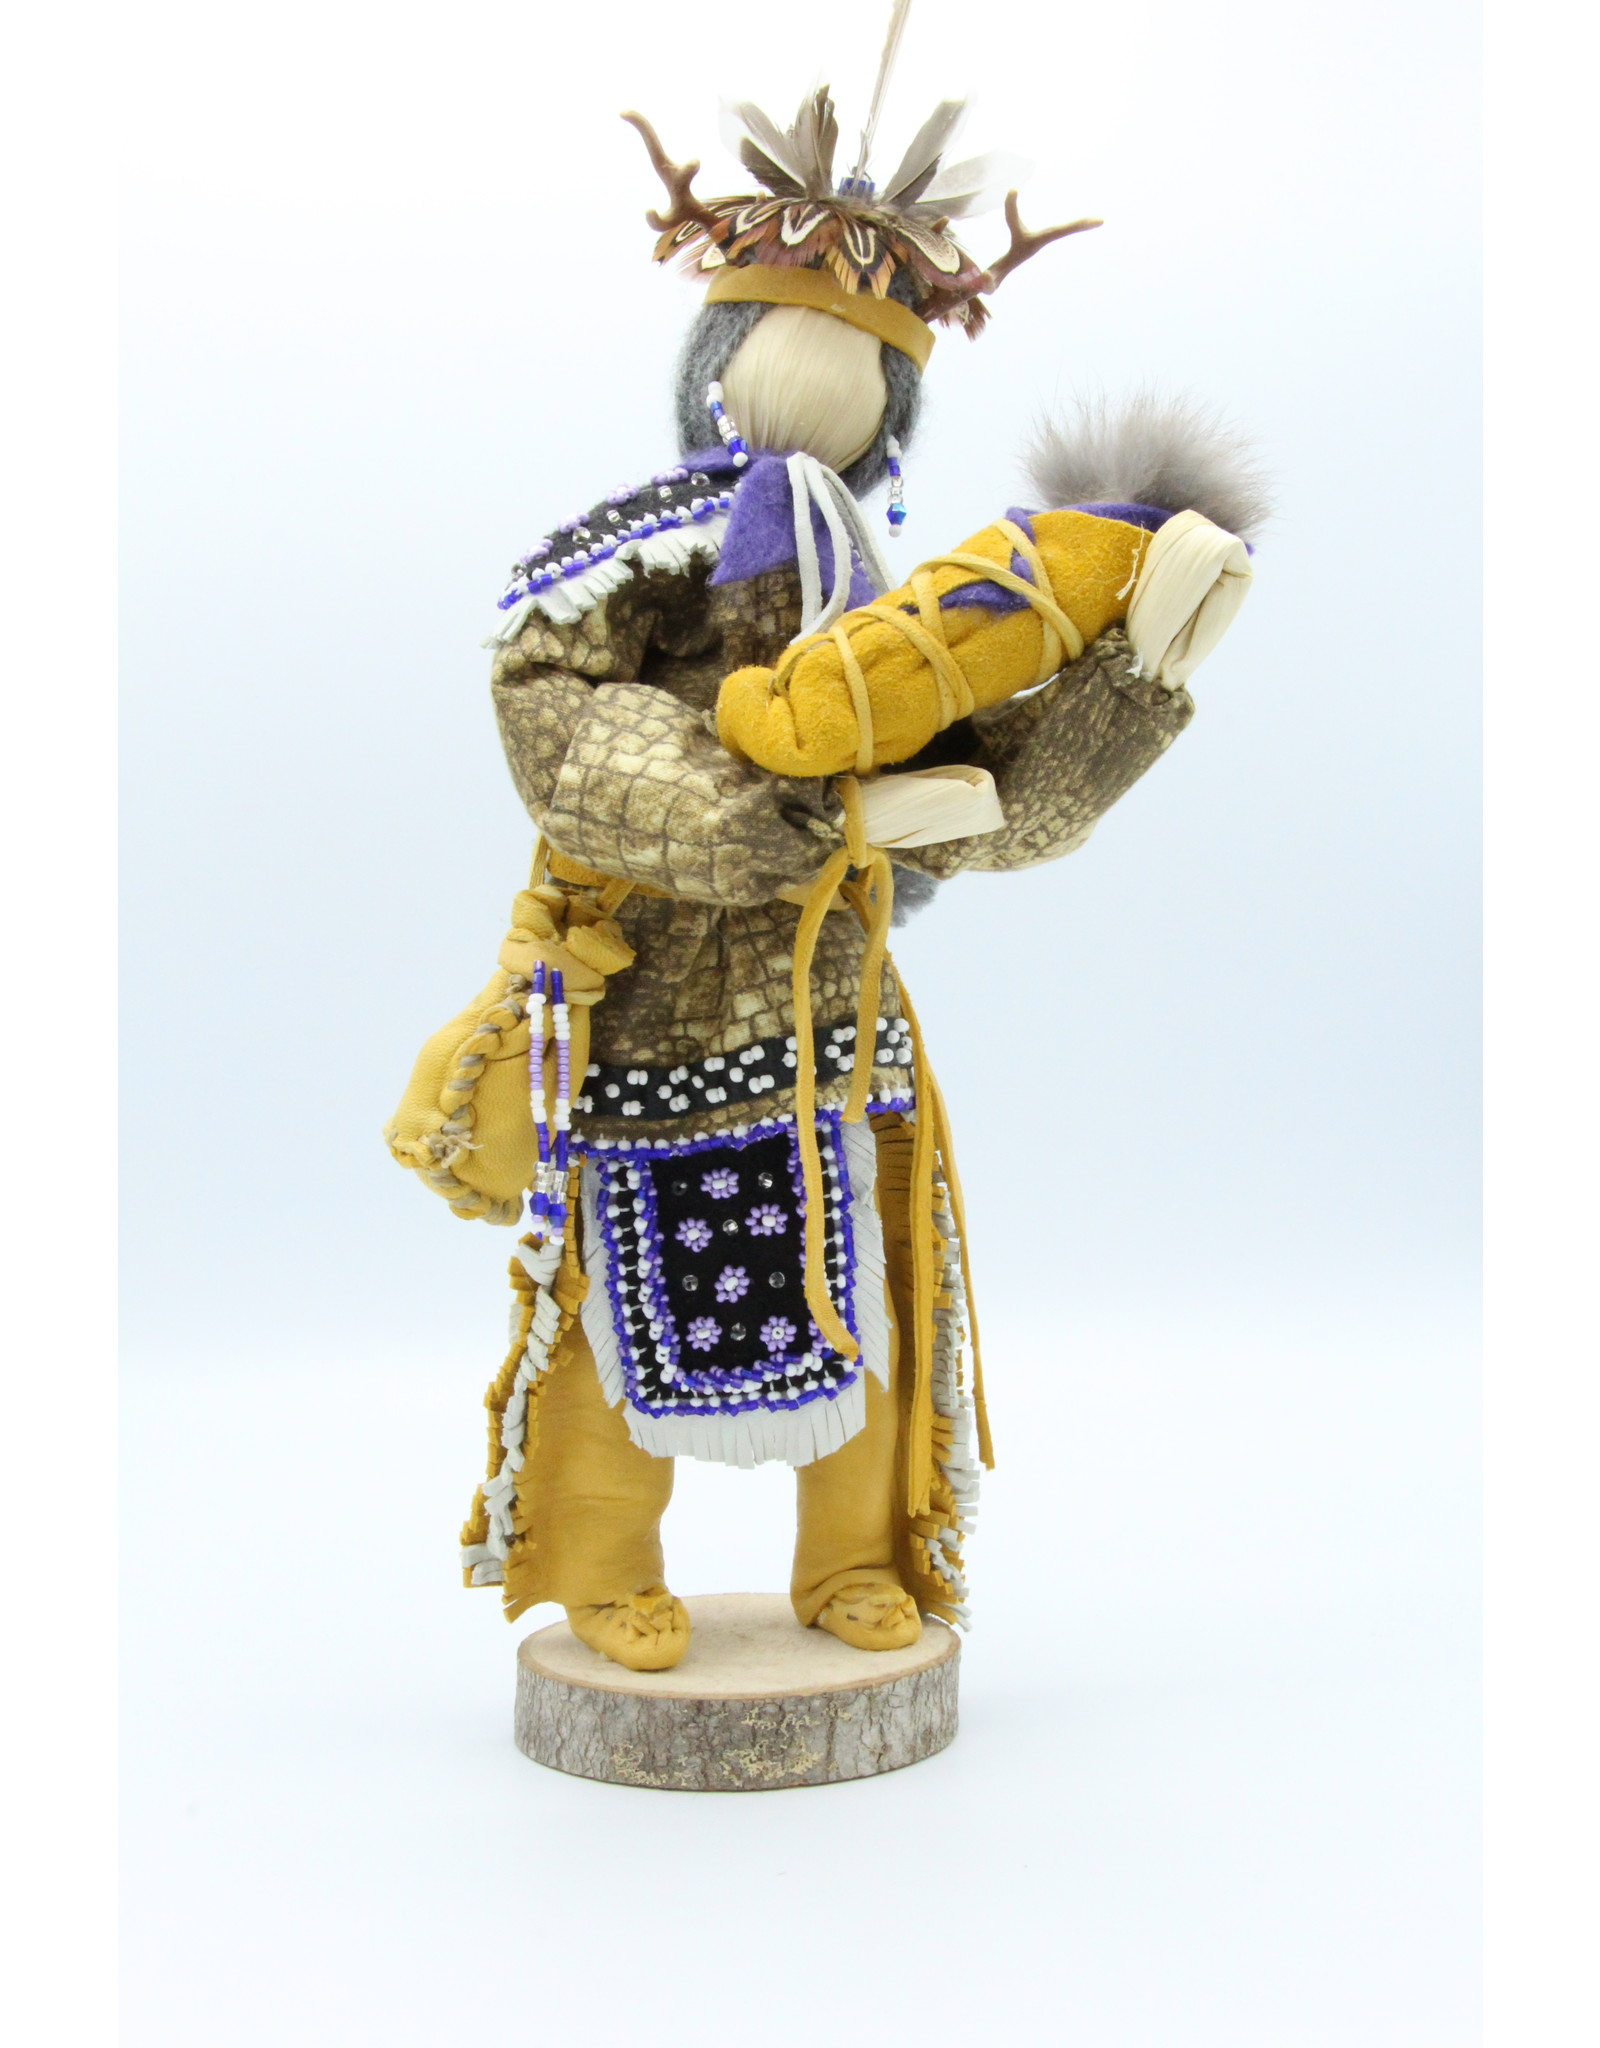 44-977 Corn Husk Doll with Infant by Cindy Skye